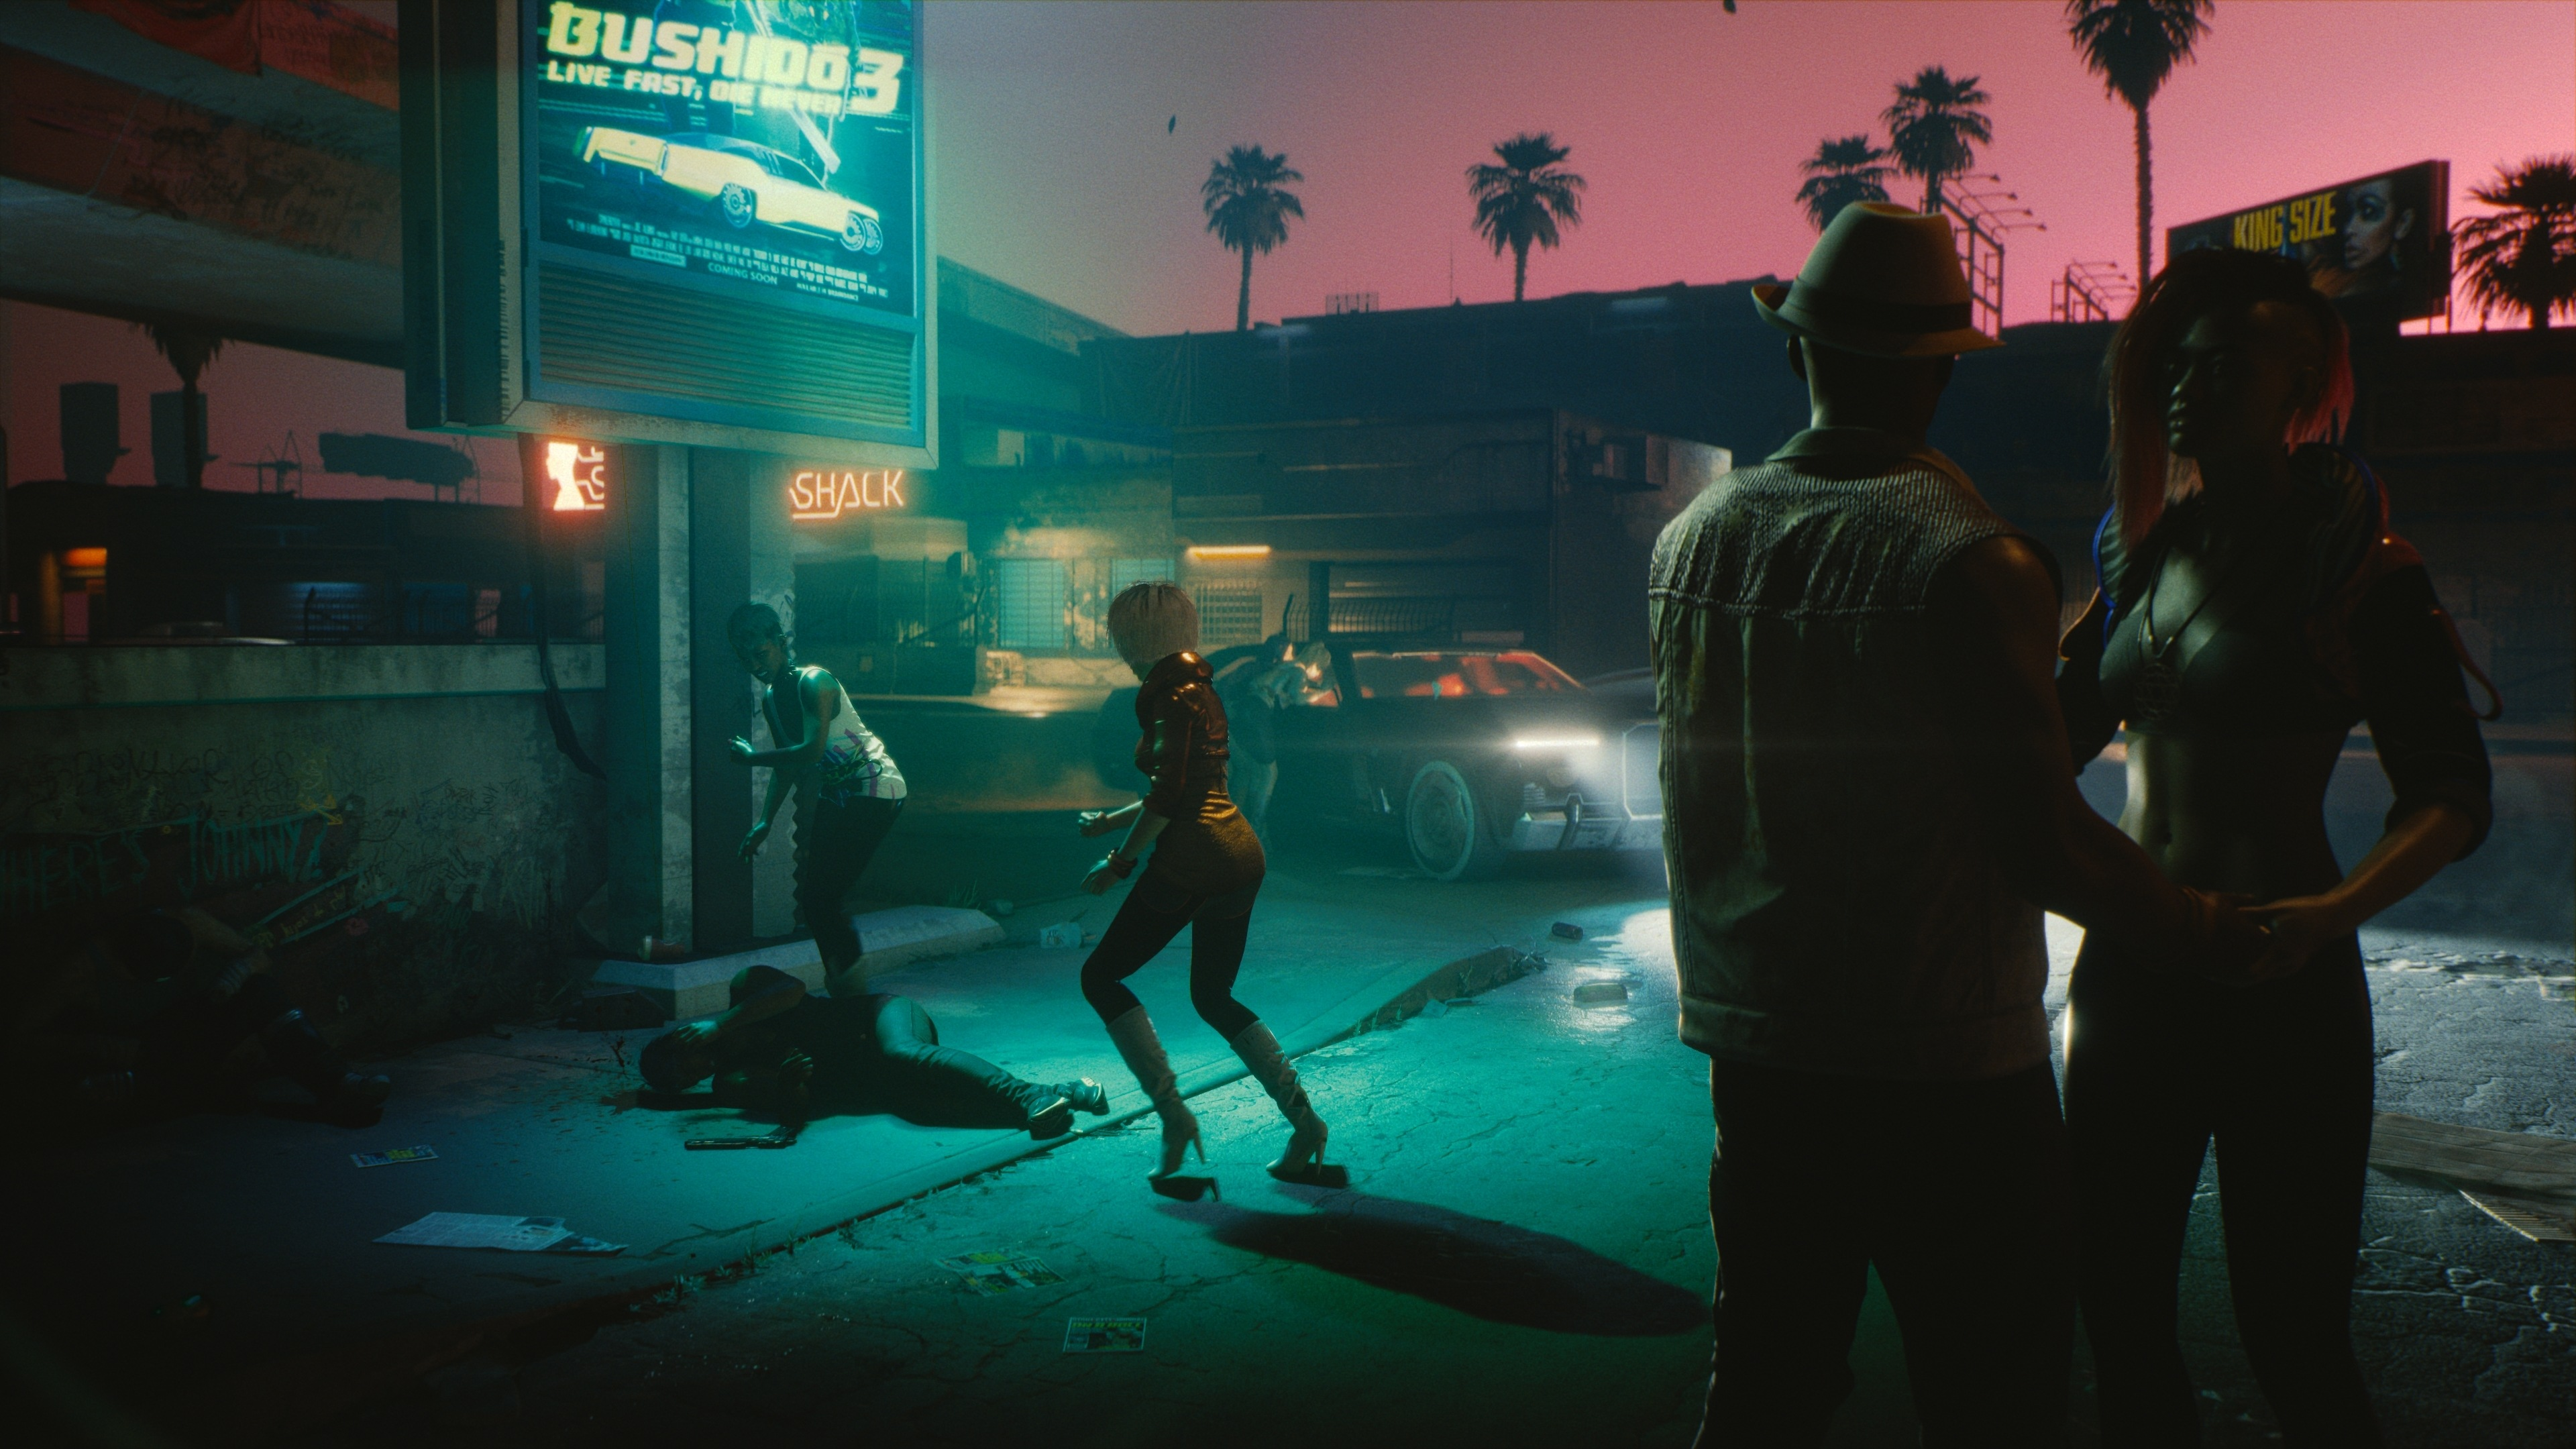 Cyberpunk 2077 4k Ultra Hd Wallpaper Background Image 3840x2160 Id 927374 Wallpaper Abyss